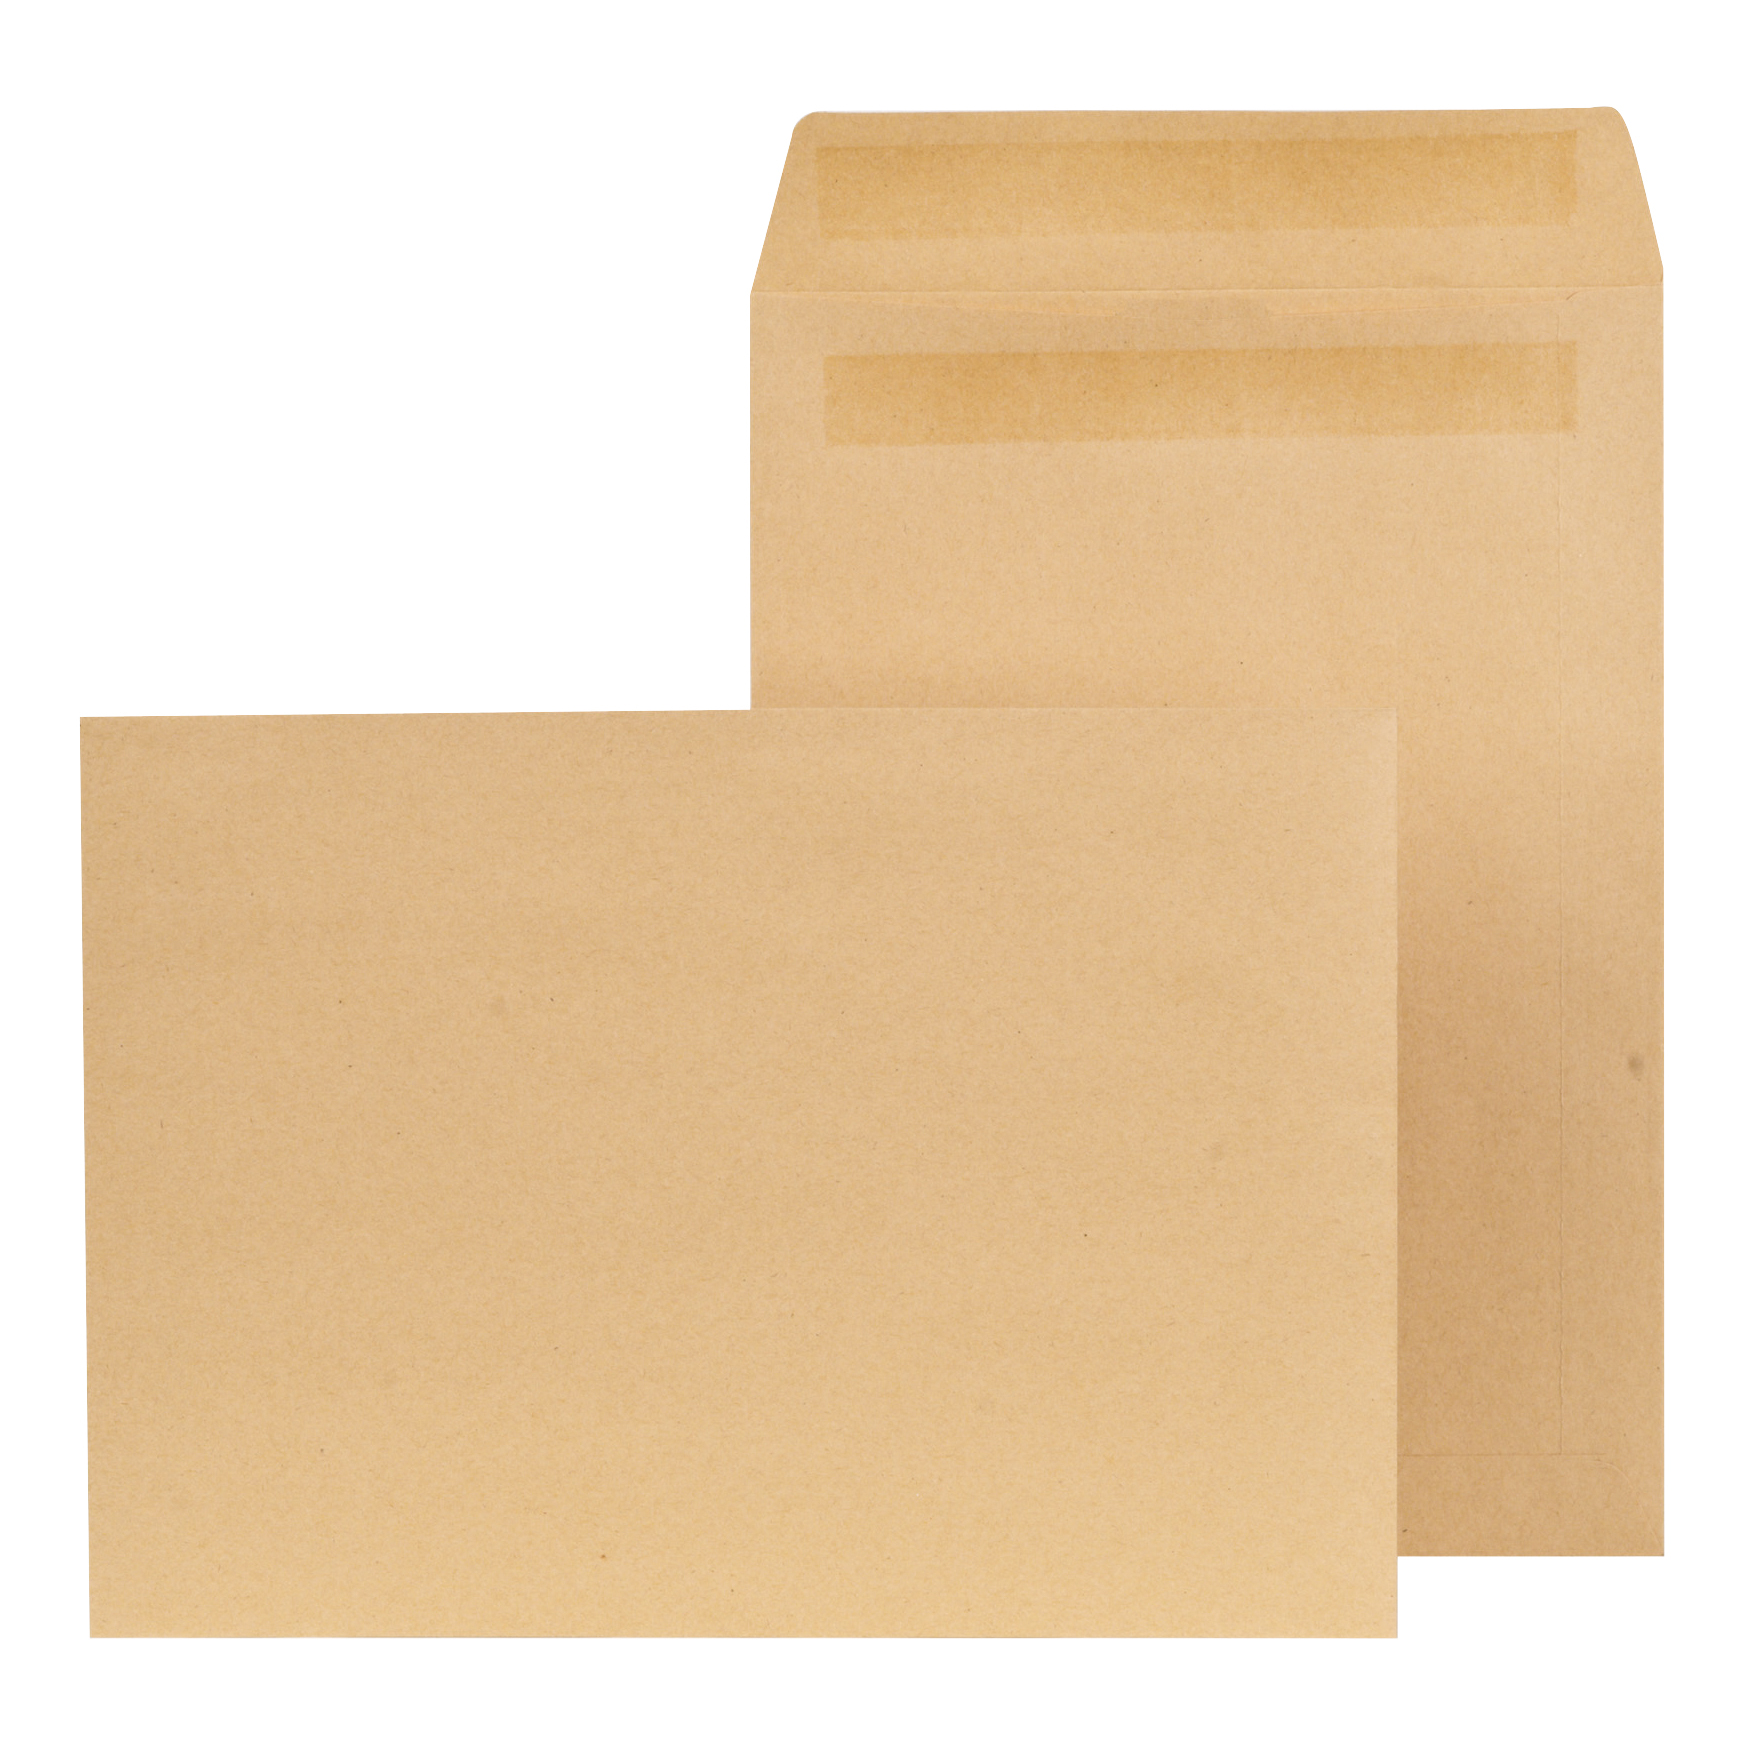 C4 New Guardian Envelopes Pocket Self Seal Lightweight 90gsm C4 324x229mm Manilla Ref K26309 Pack 250